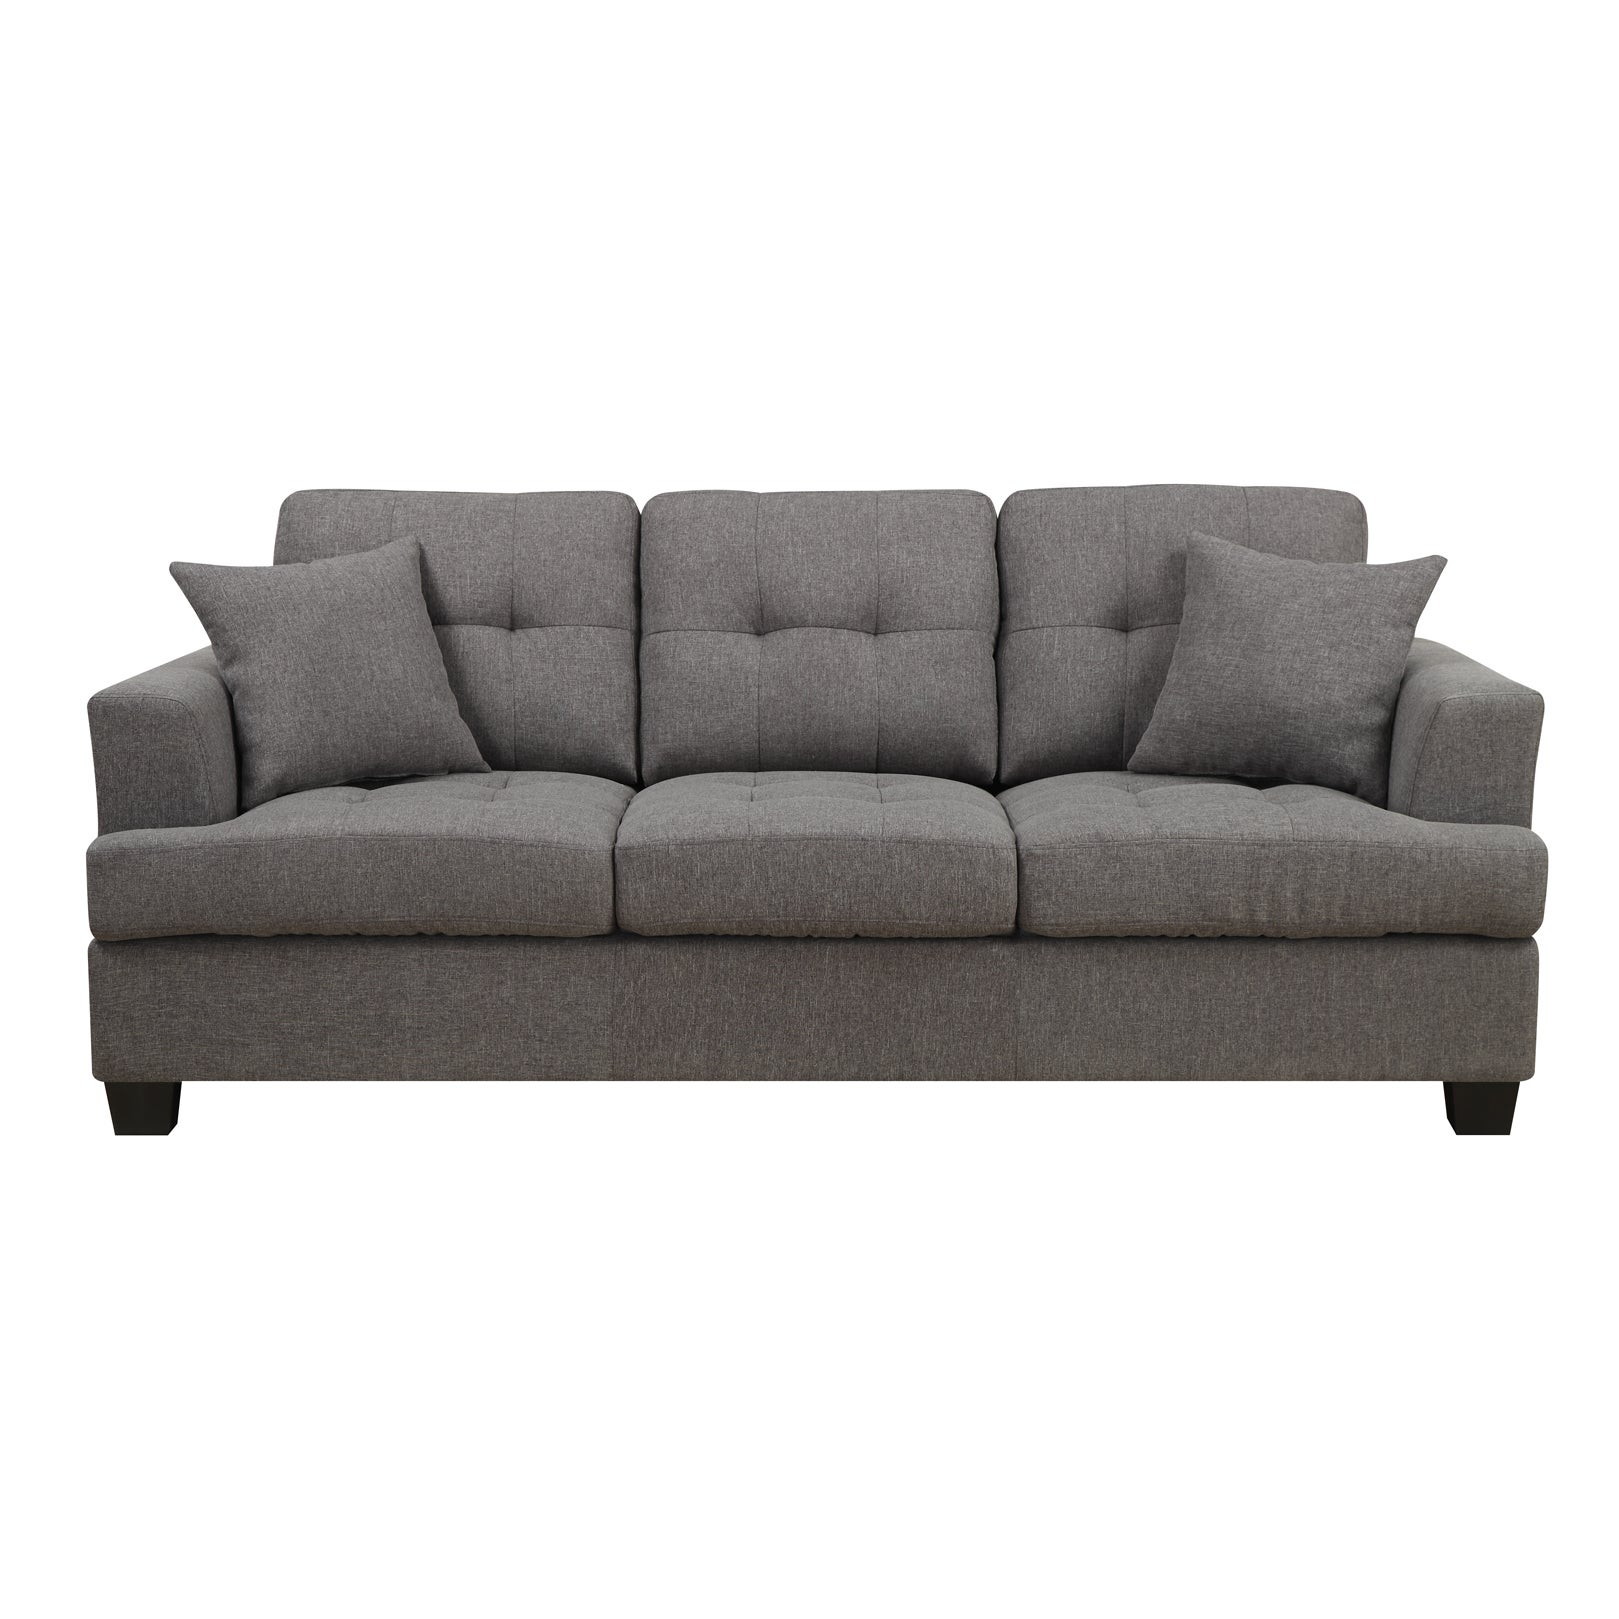 delmar loop westgate grey microfiber contemporary sofa. Black Bedroom Furniture Sets. Home Design Ideas